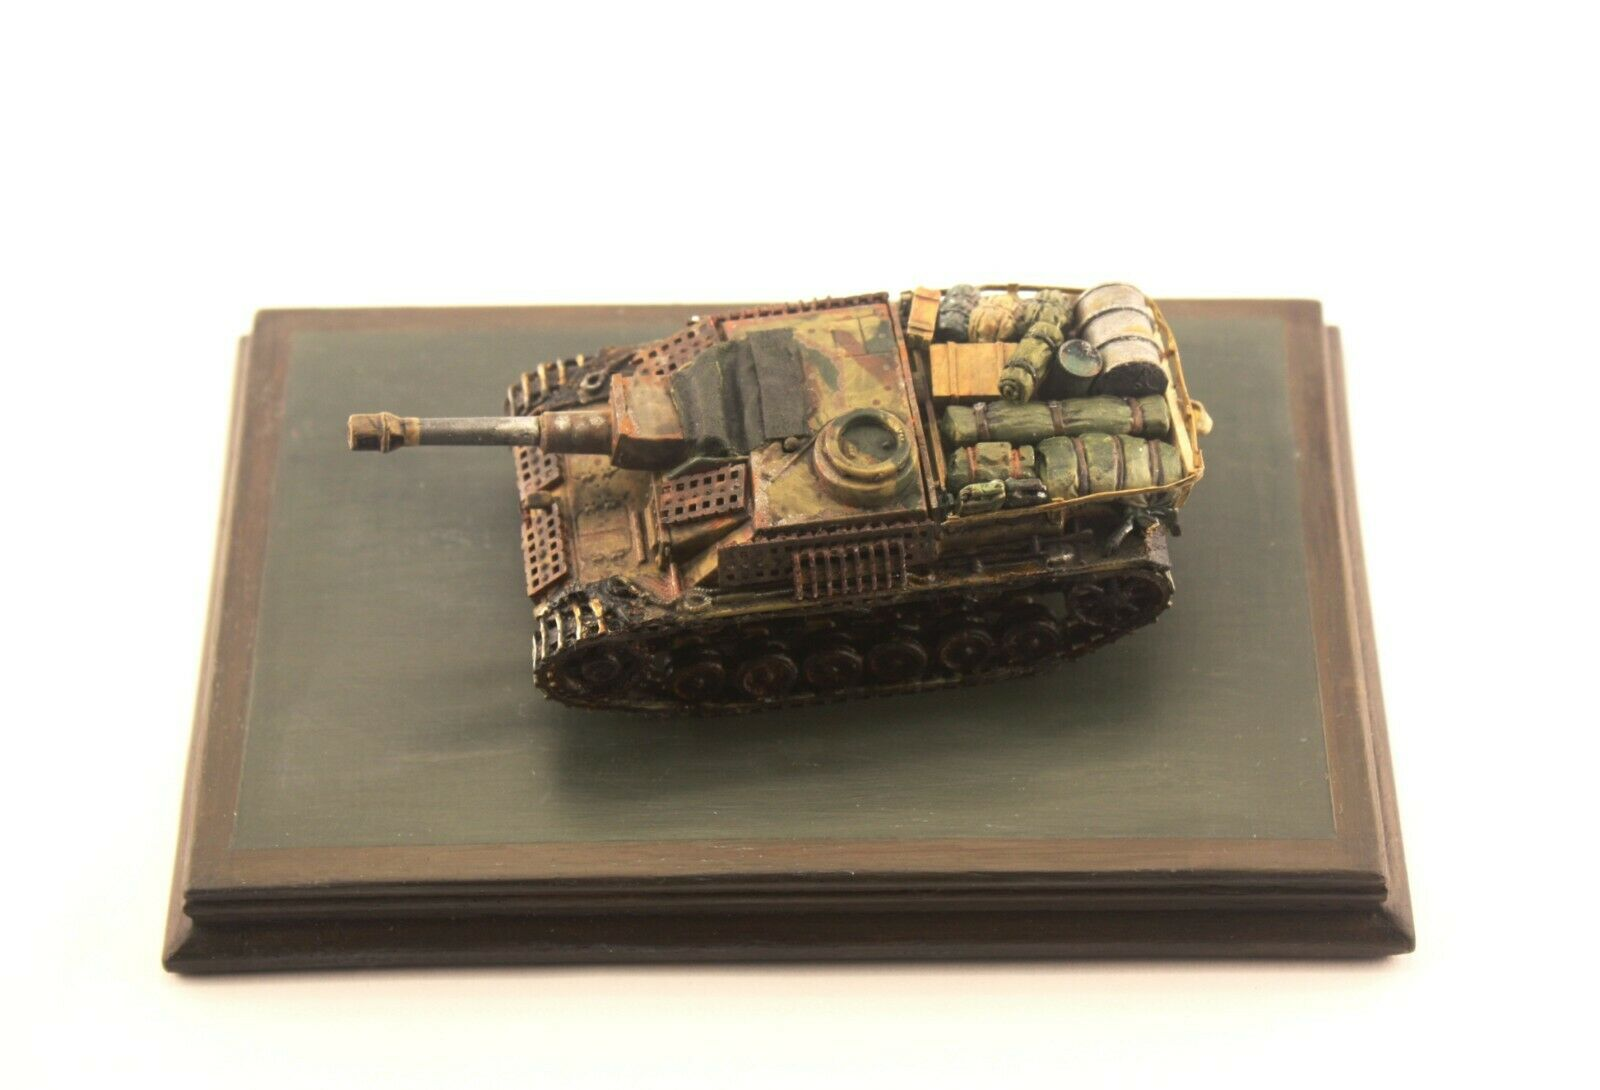 Redog 1/72 Exhibition Smart Scale Model Display Base For Tanks And Vehicles /D15 - redoguk